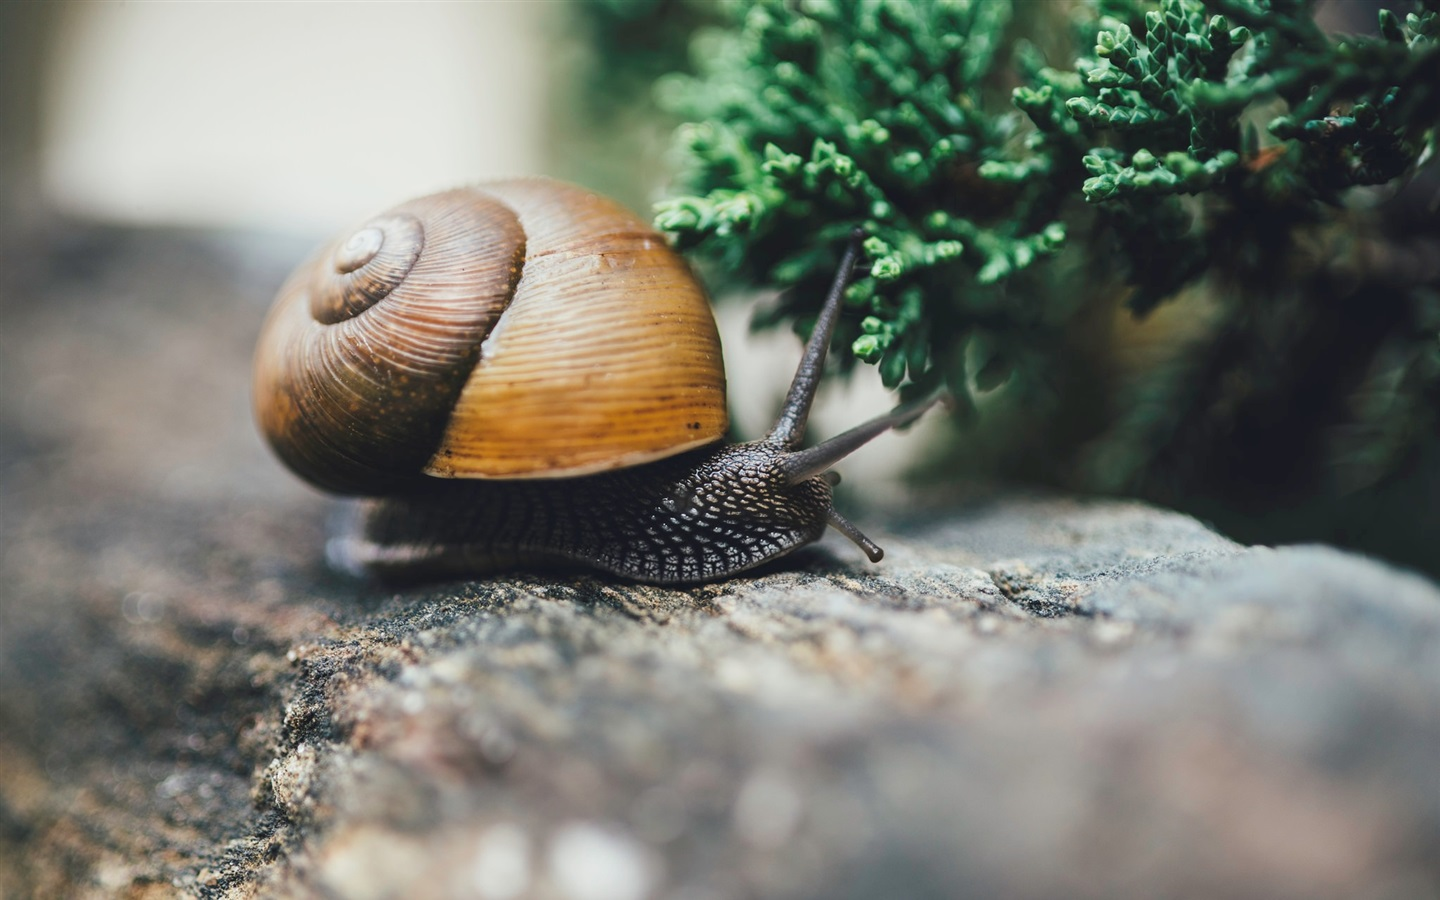 Wallpaper Snail, Insect Macro Photography 1920x1200 HD